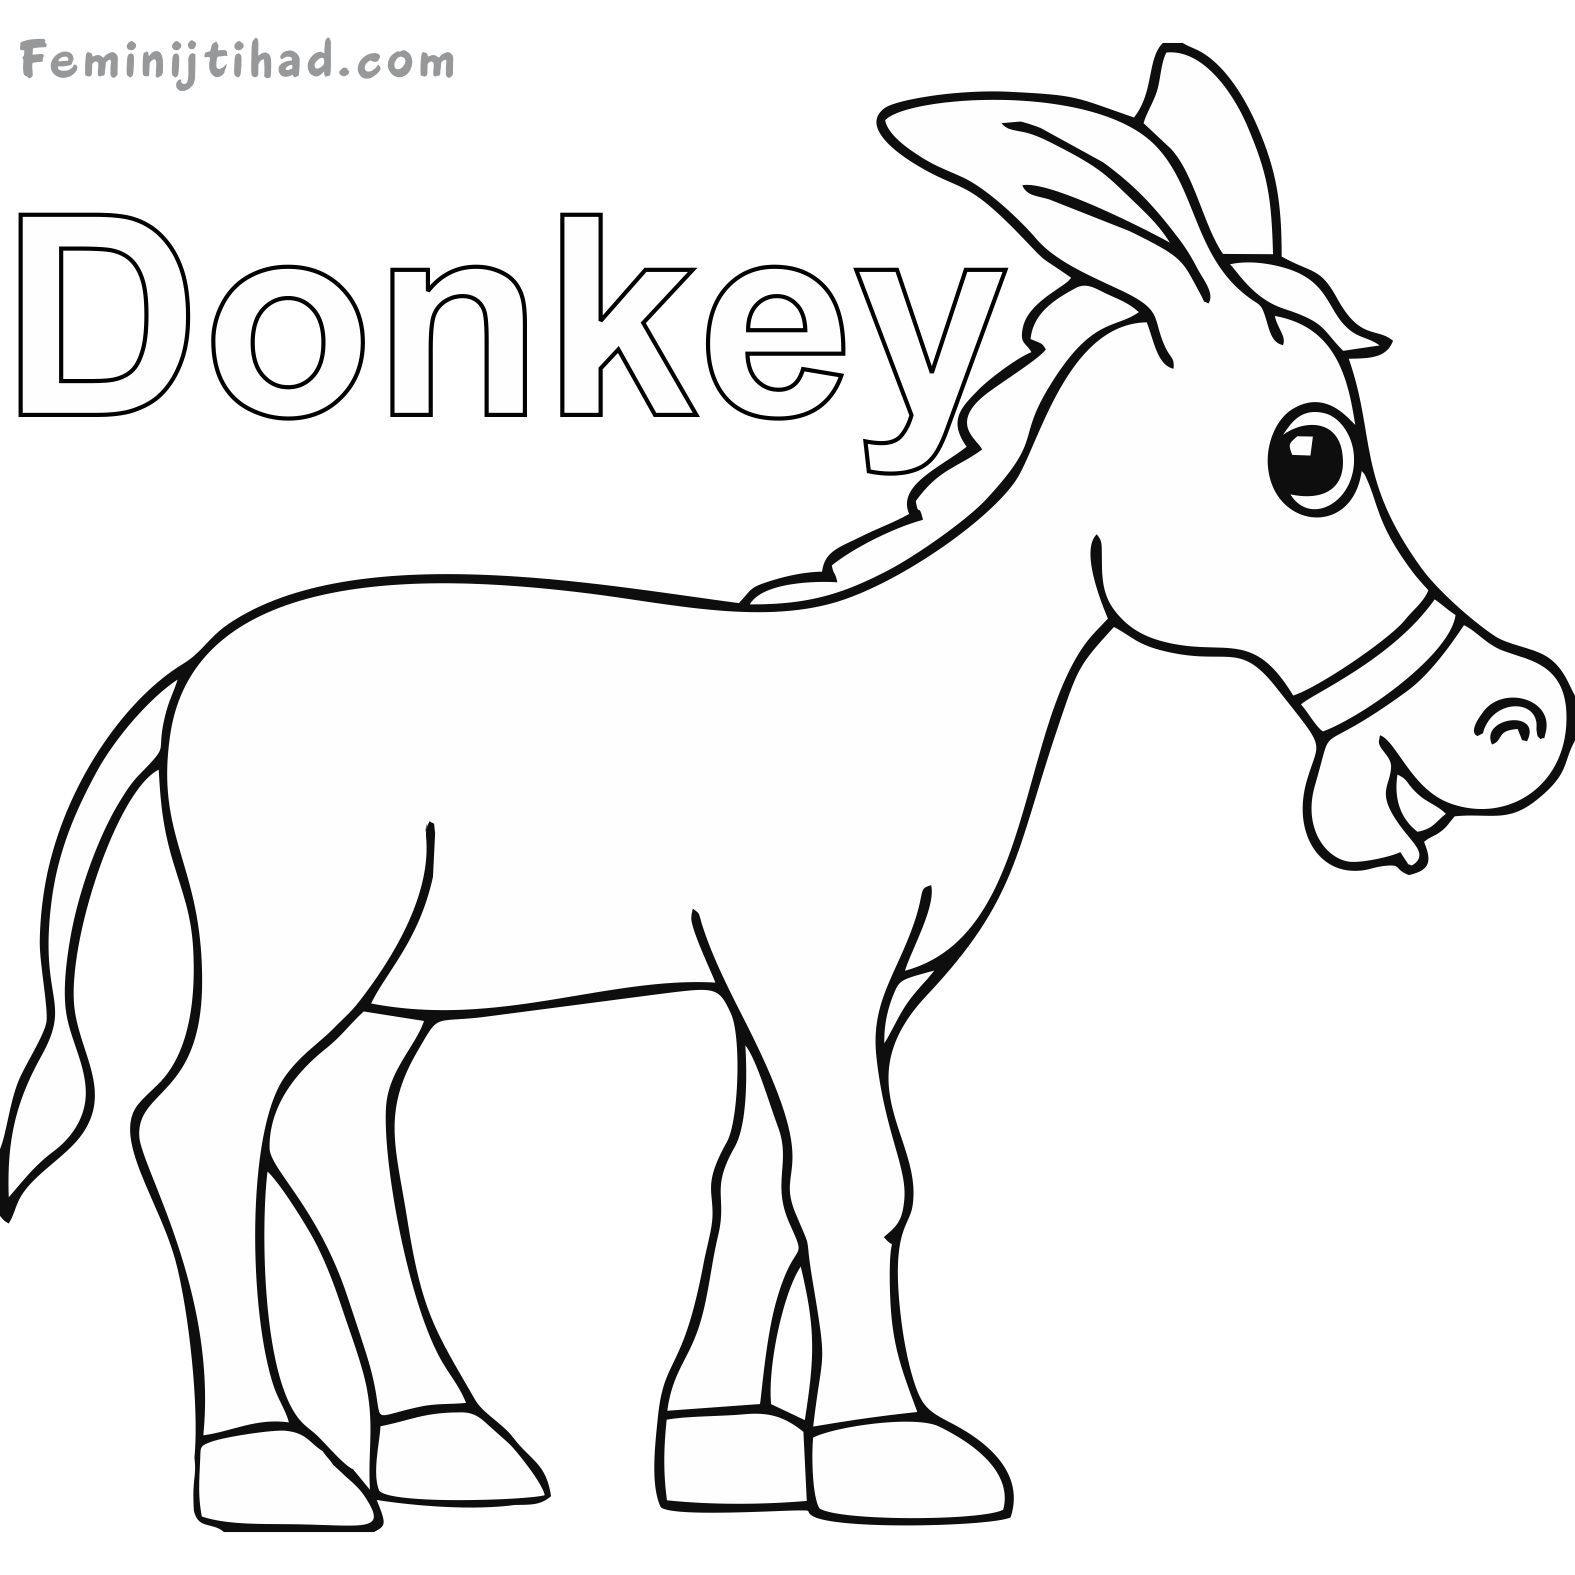 Printable Donkey Coloring Pages | Coloring pages, Coloring ...